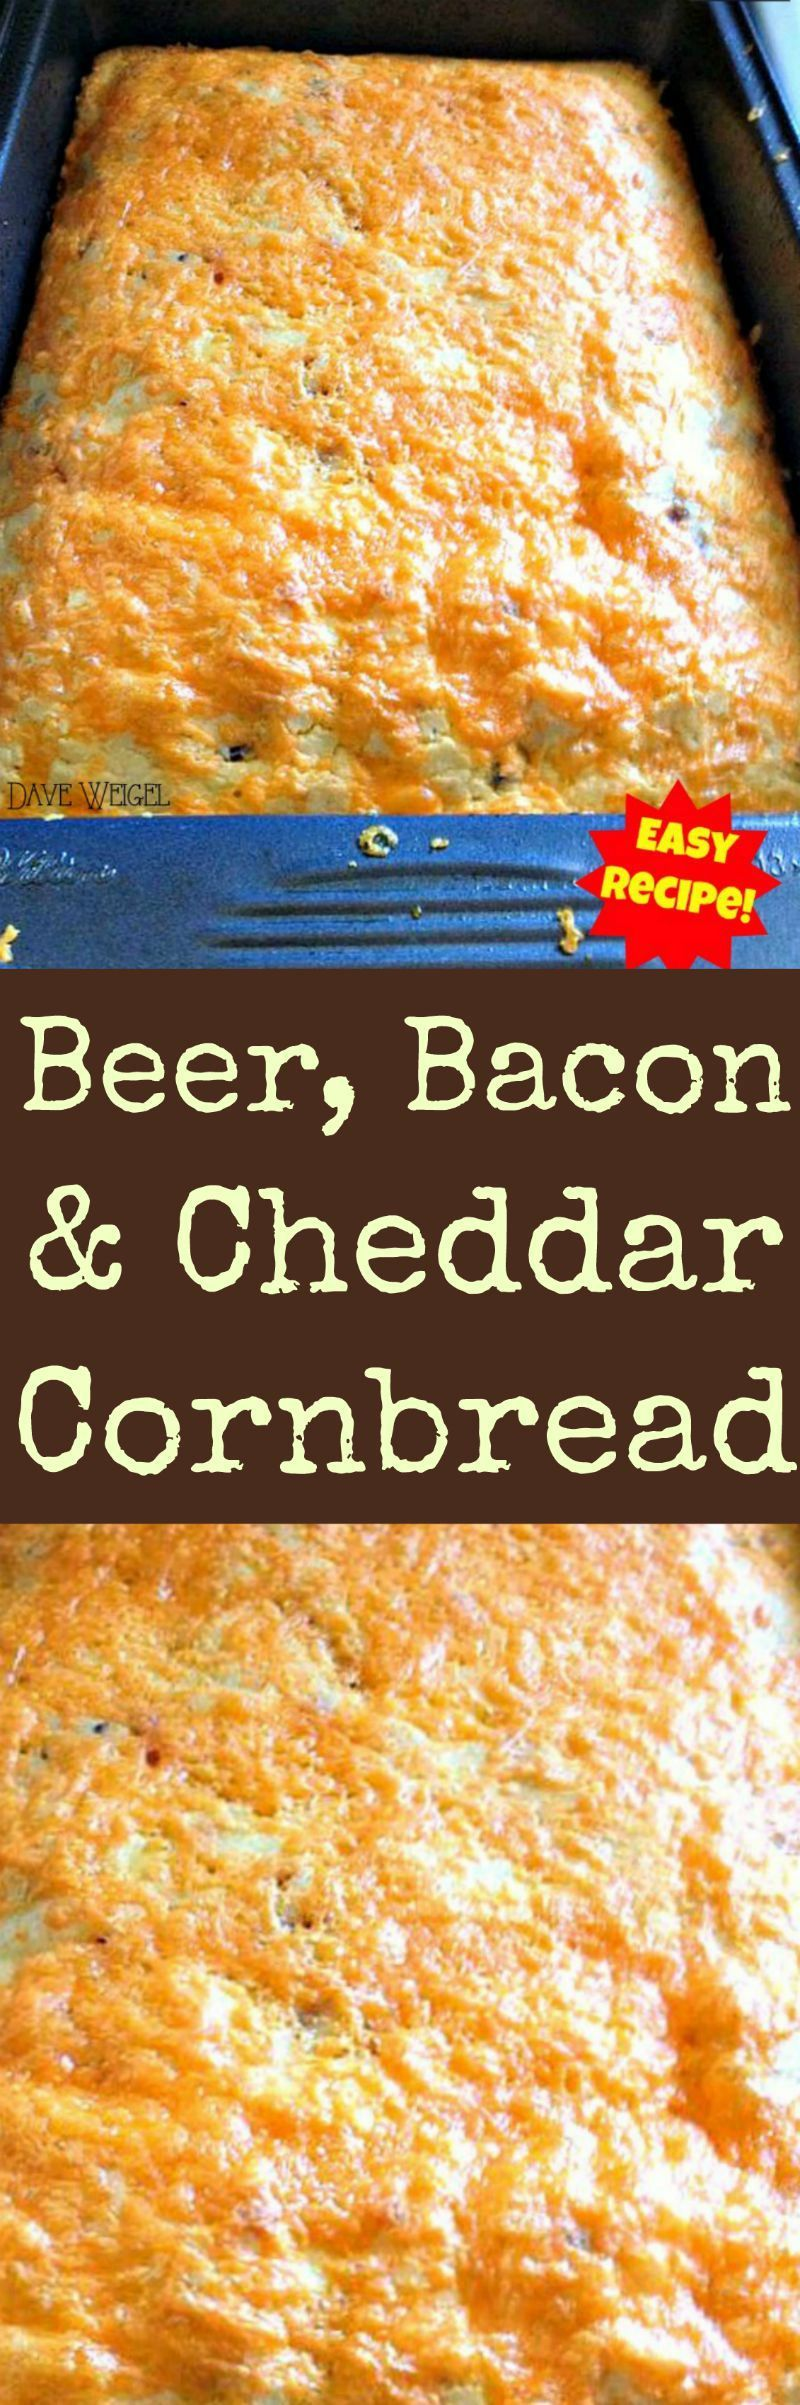 Beer, Bacon and Cheddar Cornbread An easy recipe with a great flavour combination. Goes well with soups, chili, stews or simply on it's own!